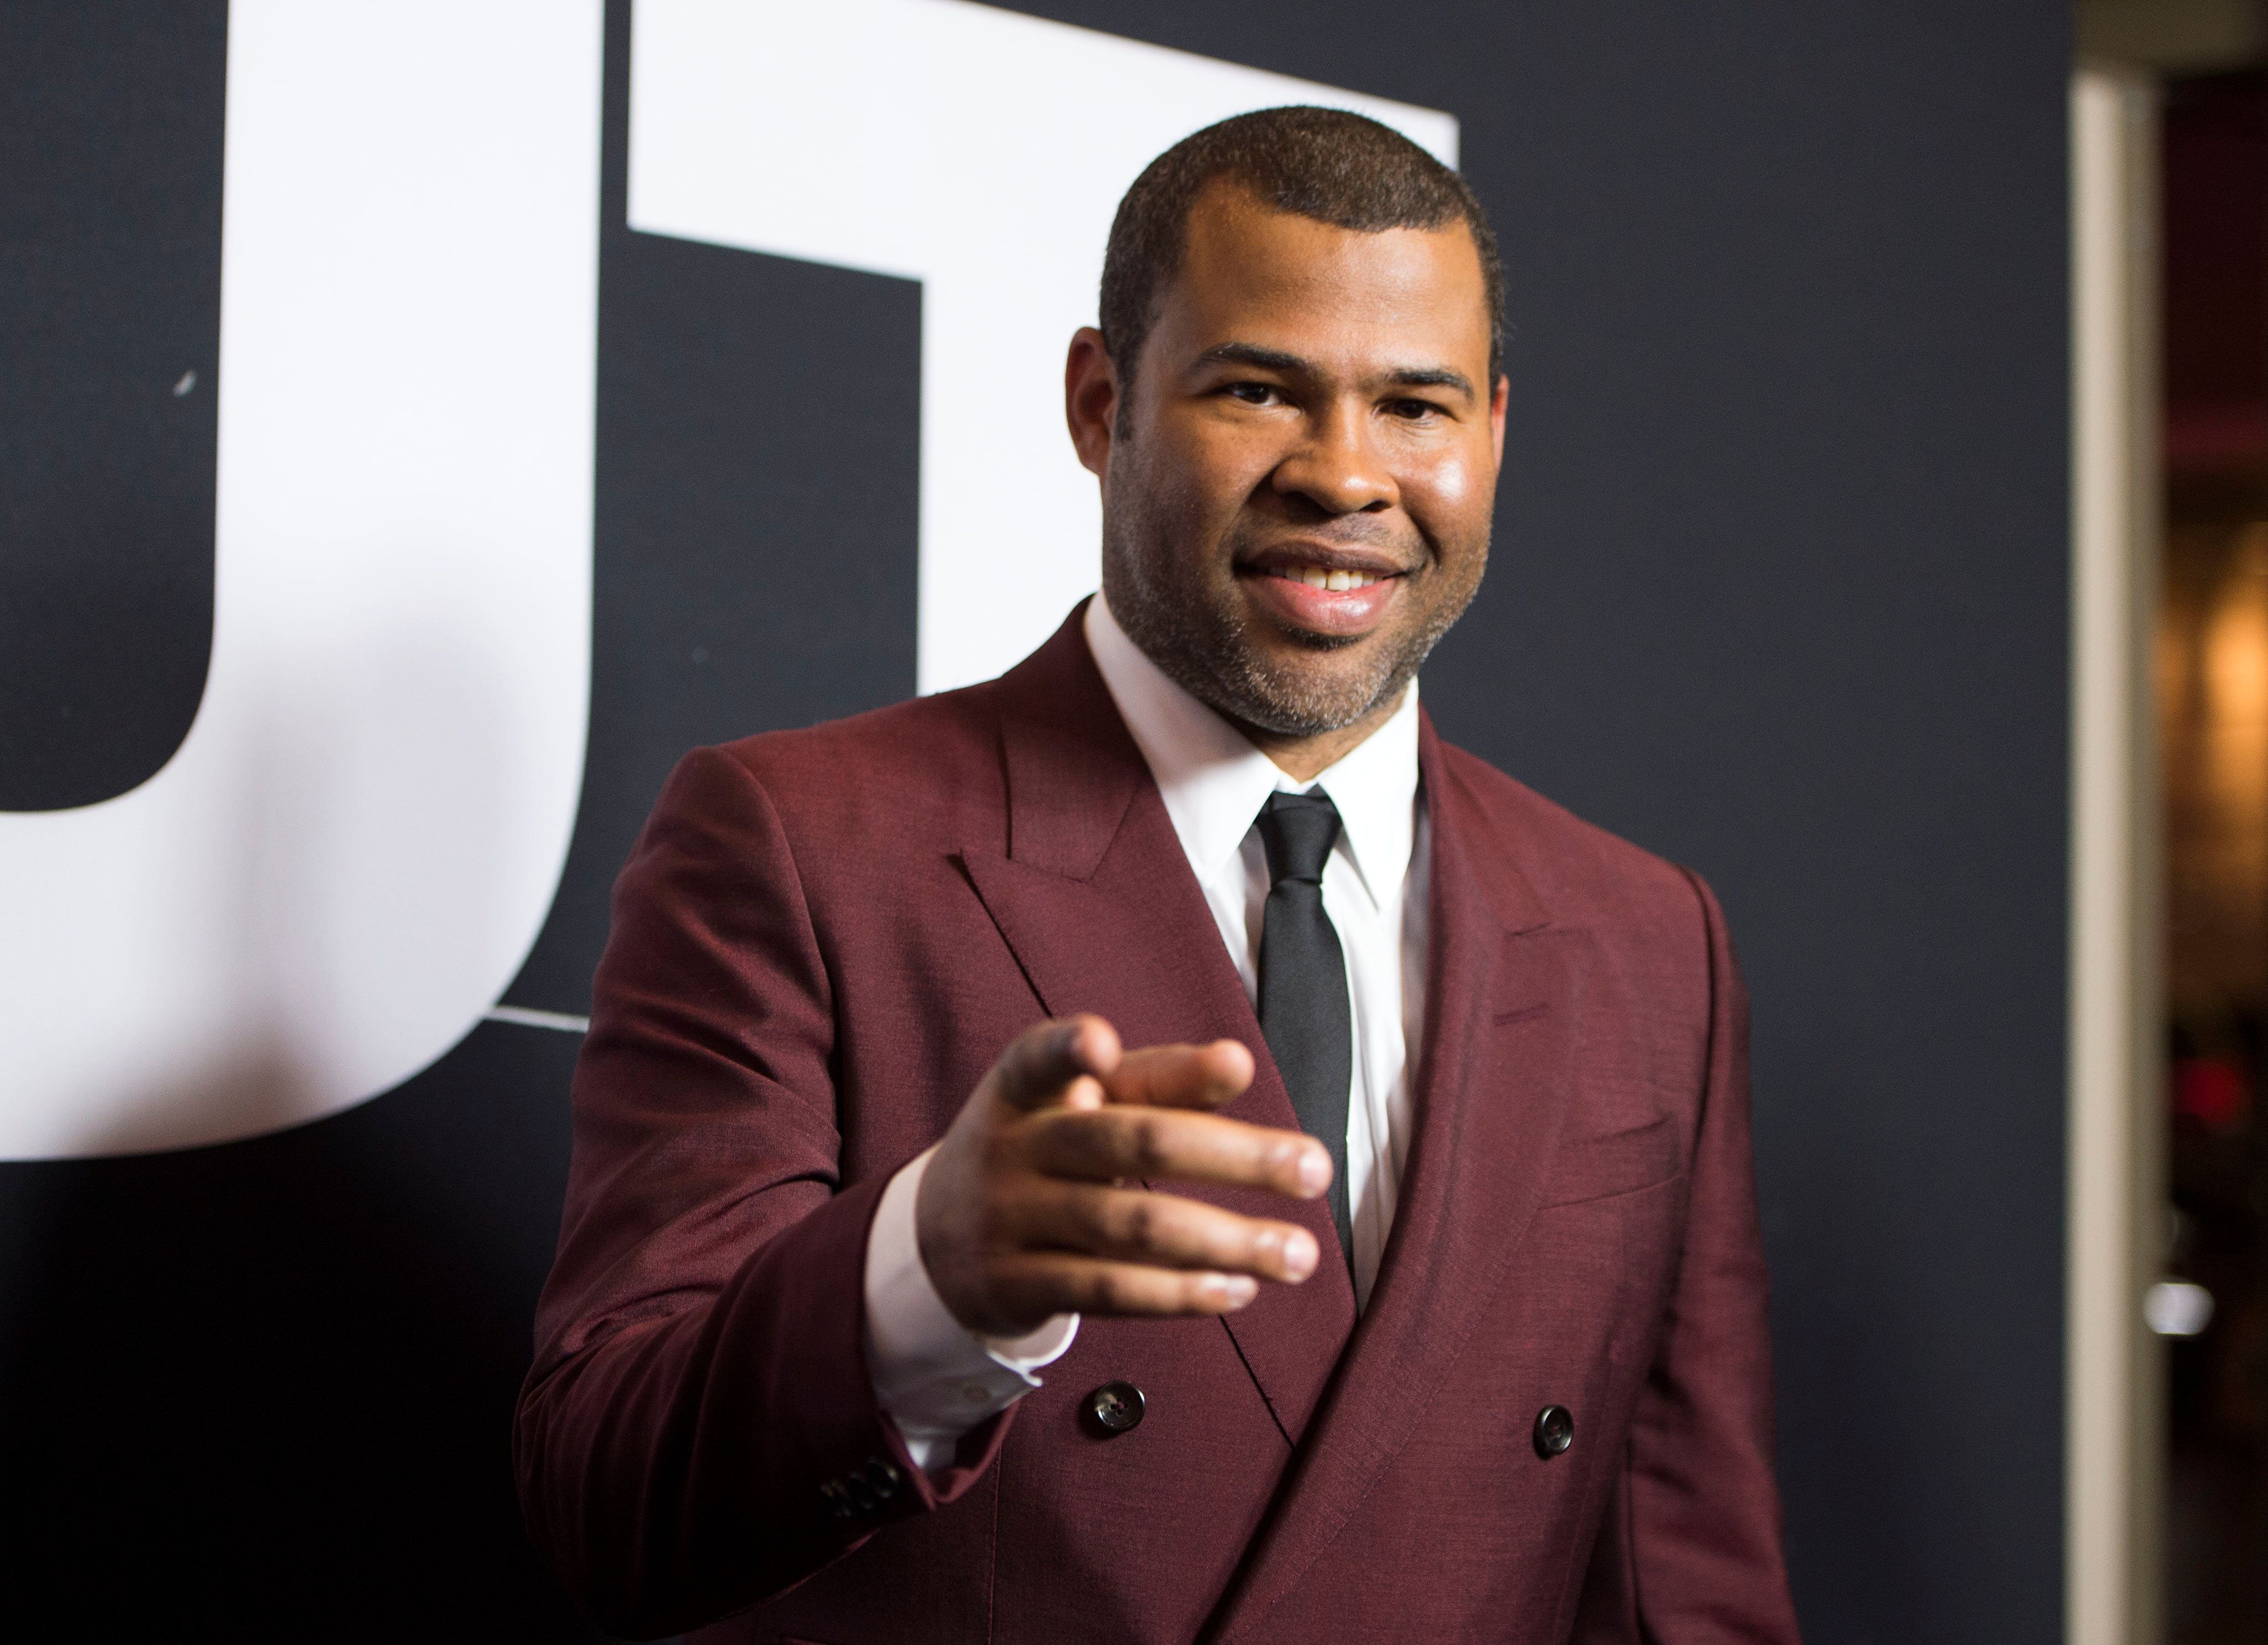 Director Jordan Peele attends the Universal Pictures Special Screening of 'Get Out', in Los Angeles, California, on February 10, 2017. / AFP / VALERIE MACON        (Photo credit should read VALERIE MACON/AFP/Getty Images)